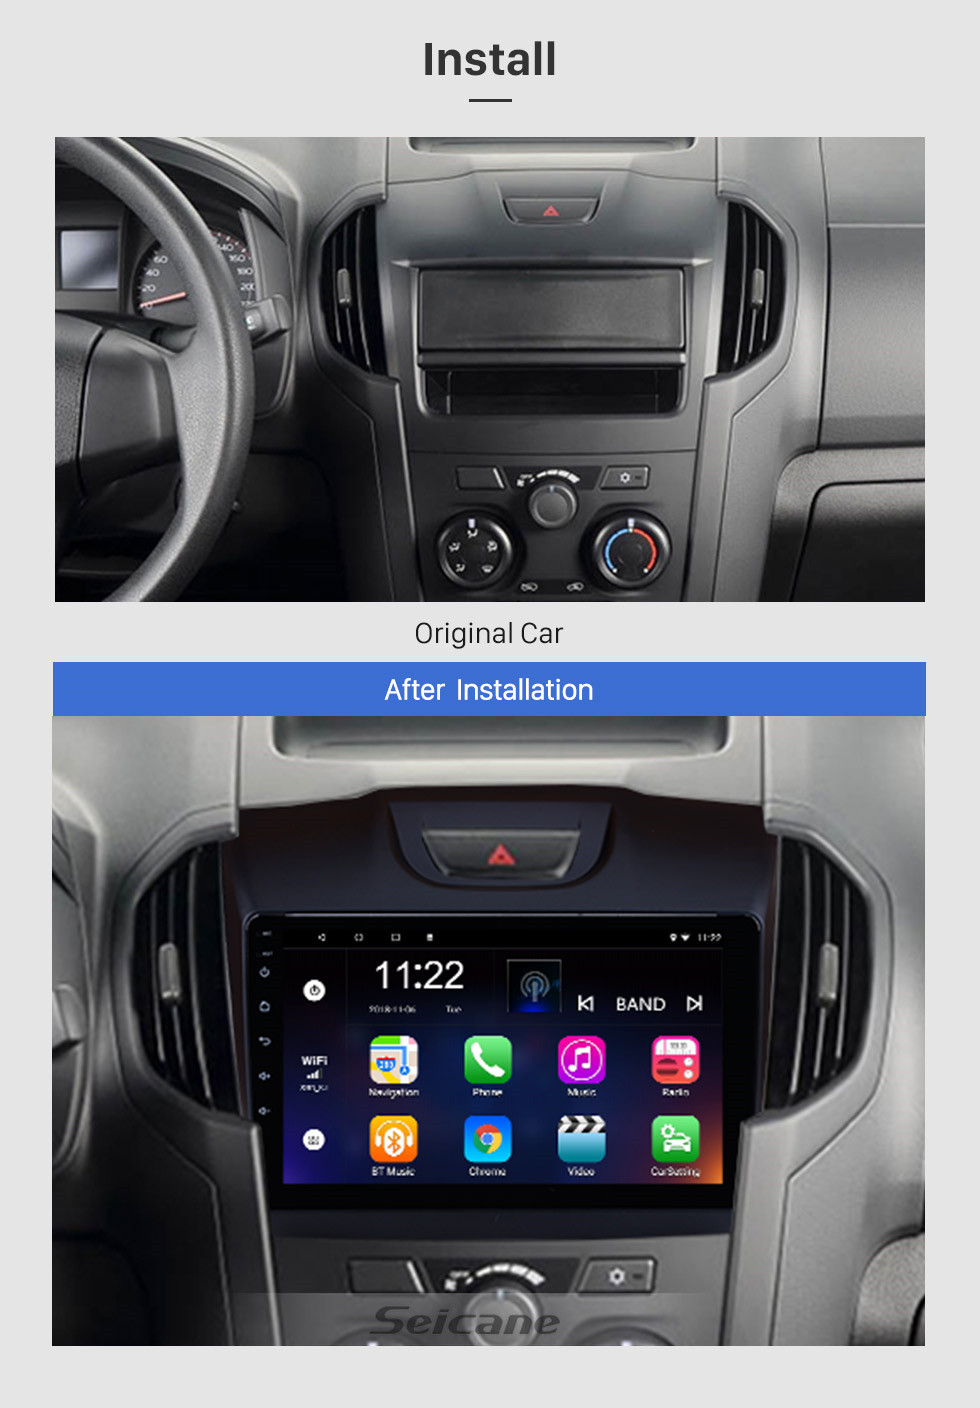 Seicane 9 inch Chevy Chevrolet S10 2015-2018 ISUZU D-Max Android 8.1 Radio GPS navigation system HD 1024*600 touch screen Bluetooth DVR Rearview camera OBD2 TV WIFI Steering Wheel Control USB Mirror link